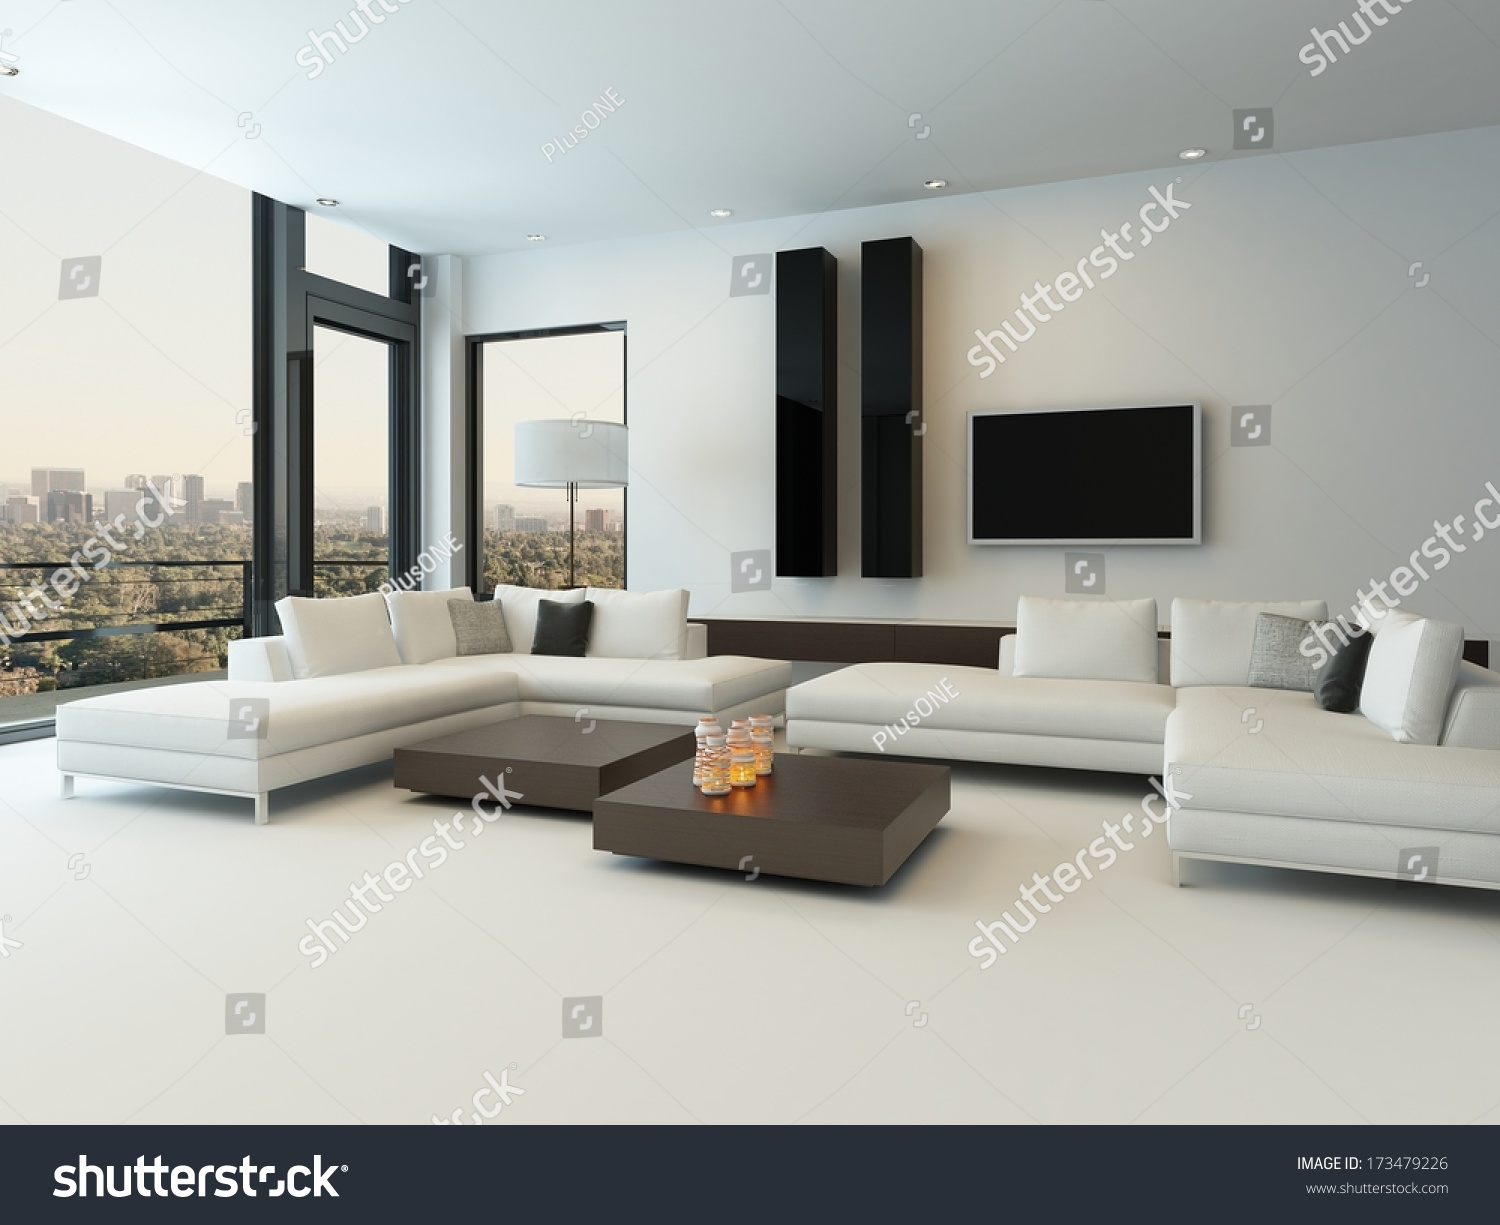 Living Room White Contemporary Living Room modern white living room with wooden furniture stock photo preview save to a lightbox